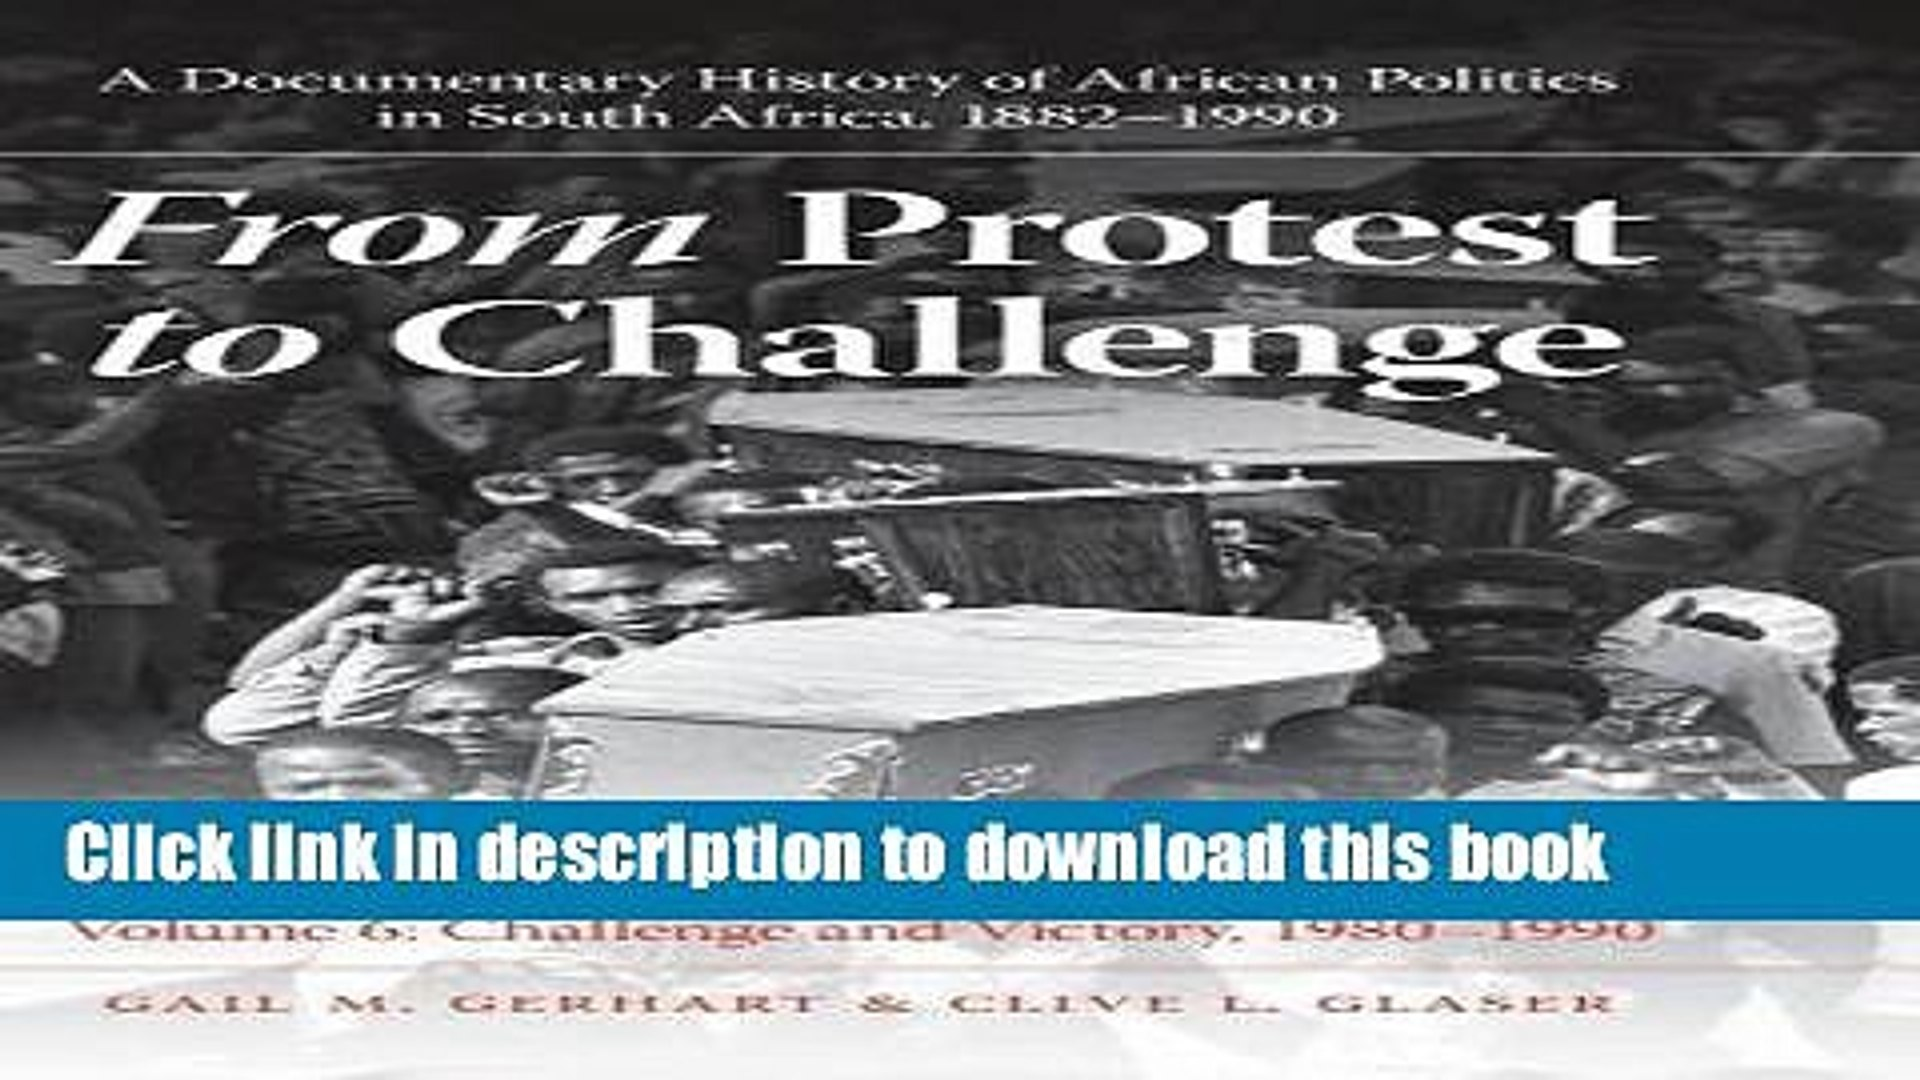 Download From Protest to Challenge, Volume 6: A Documentary History of African Politics in South